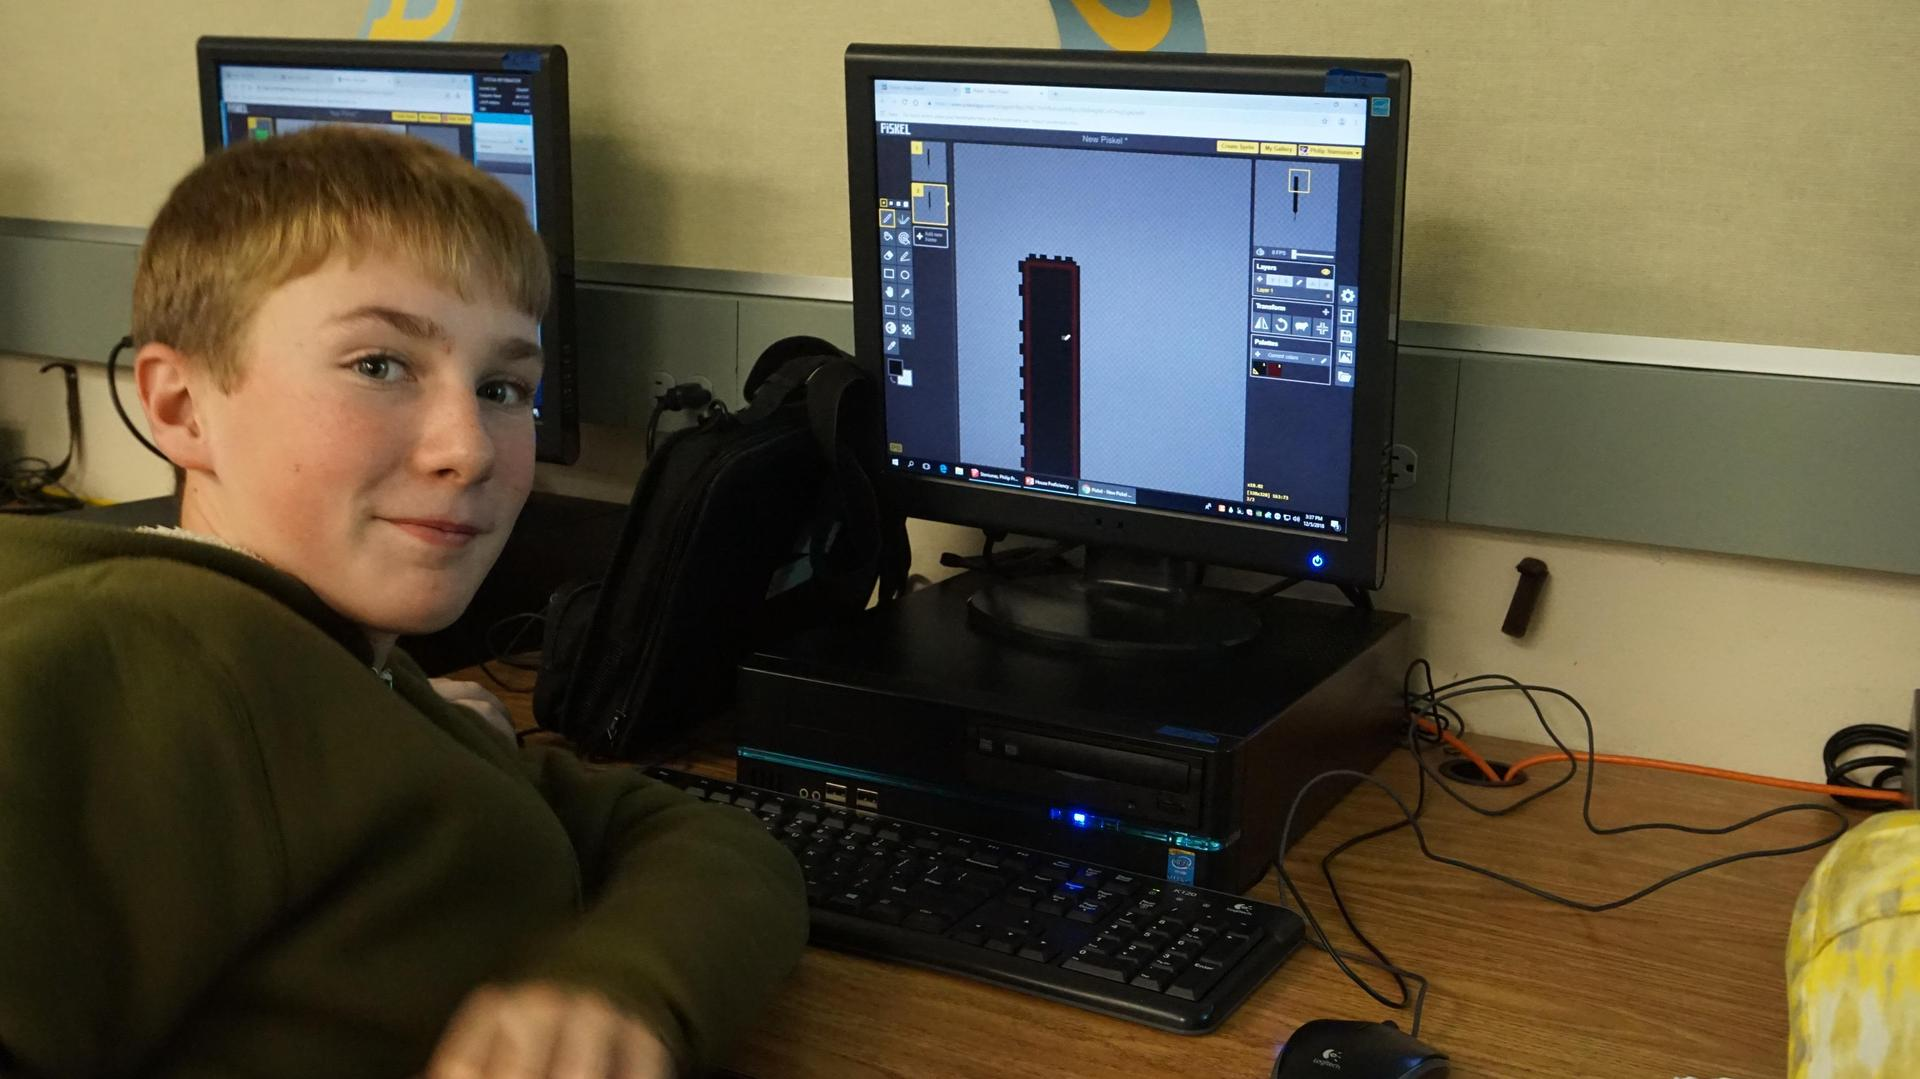 Male student showing his creation on the computer screen